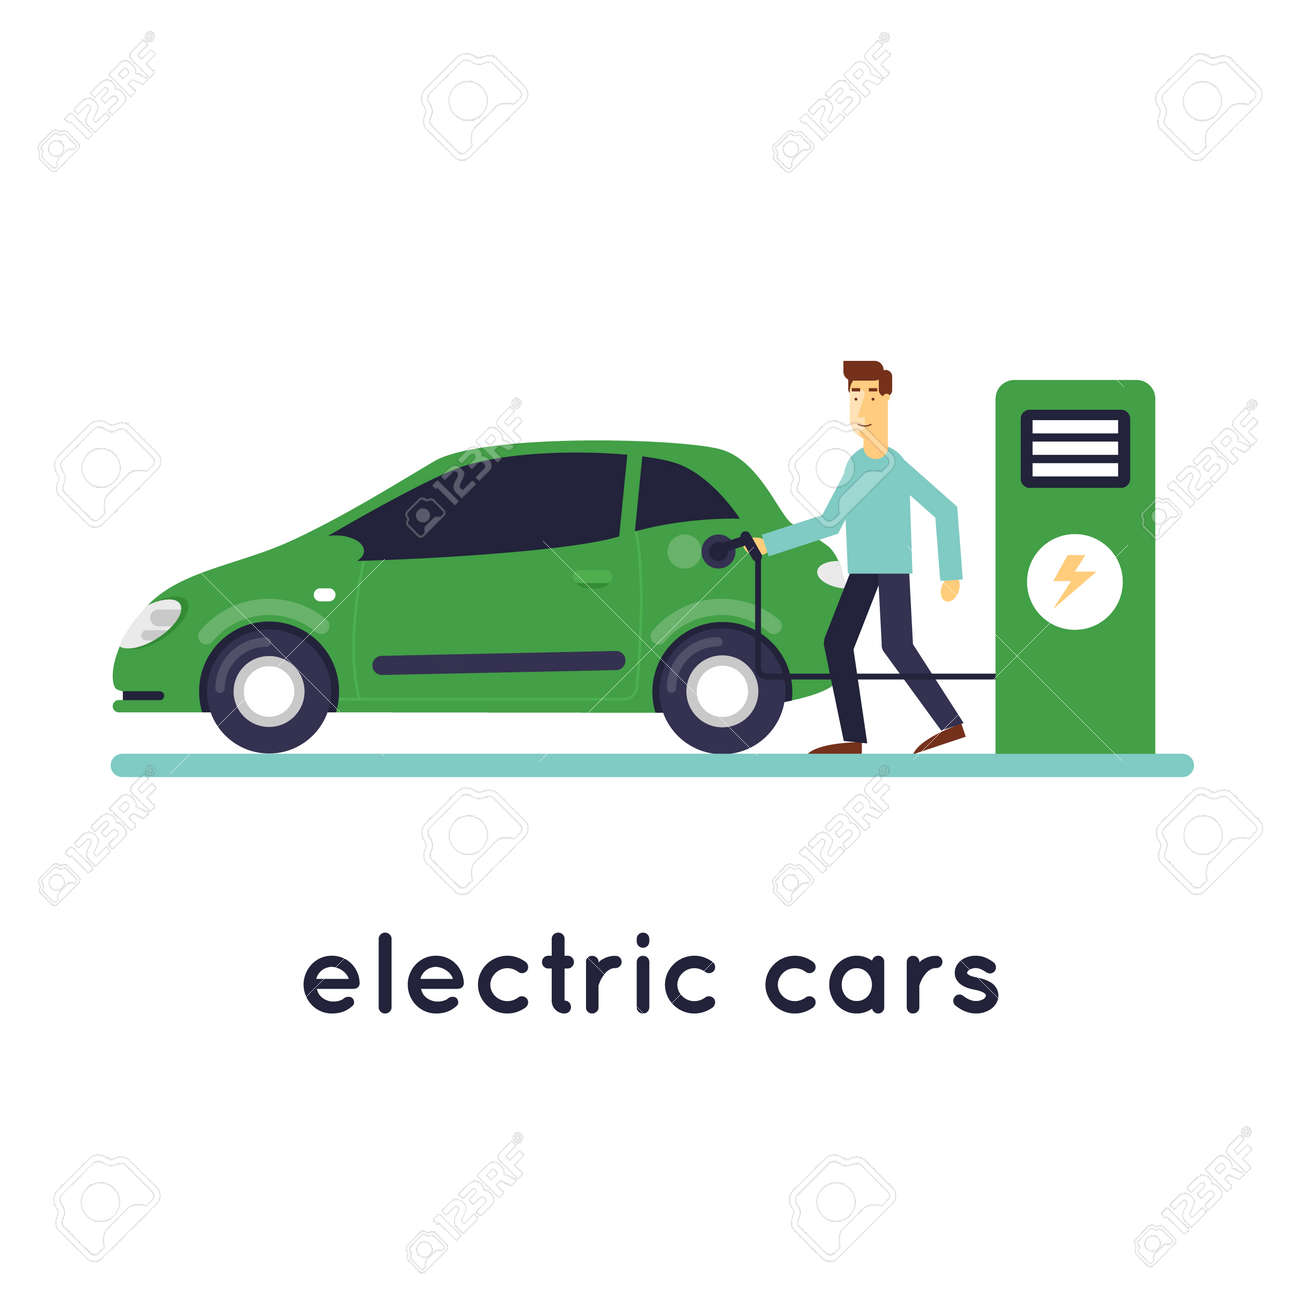 Man Charges Electric Cars Ecology Isolated On White Background